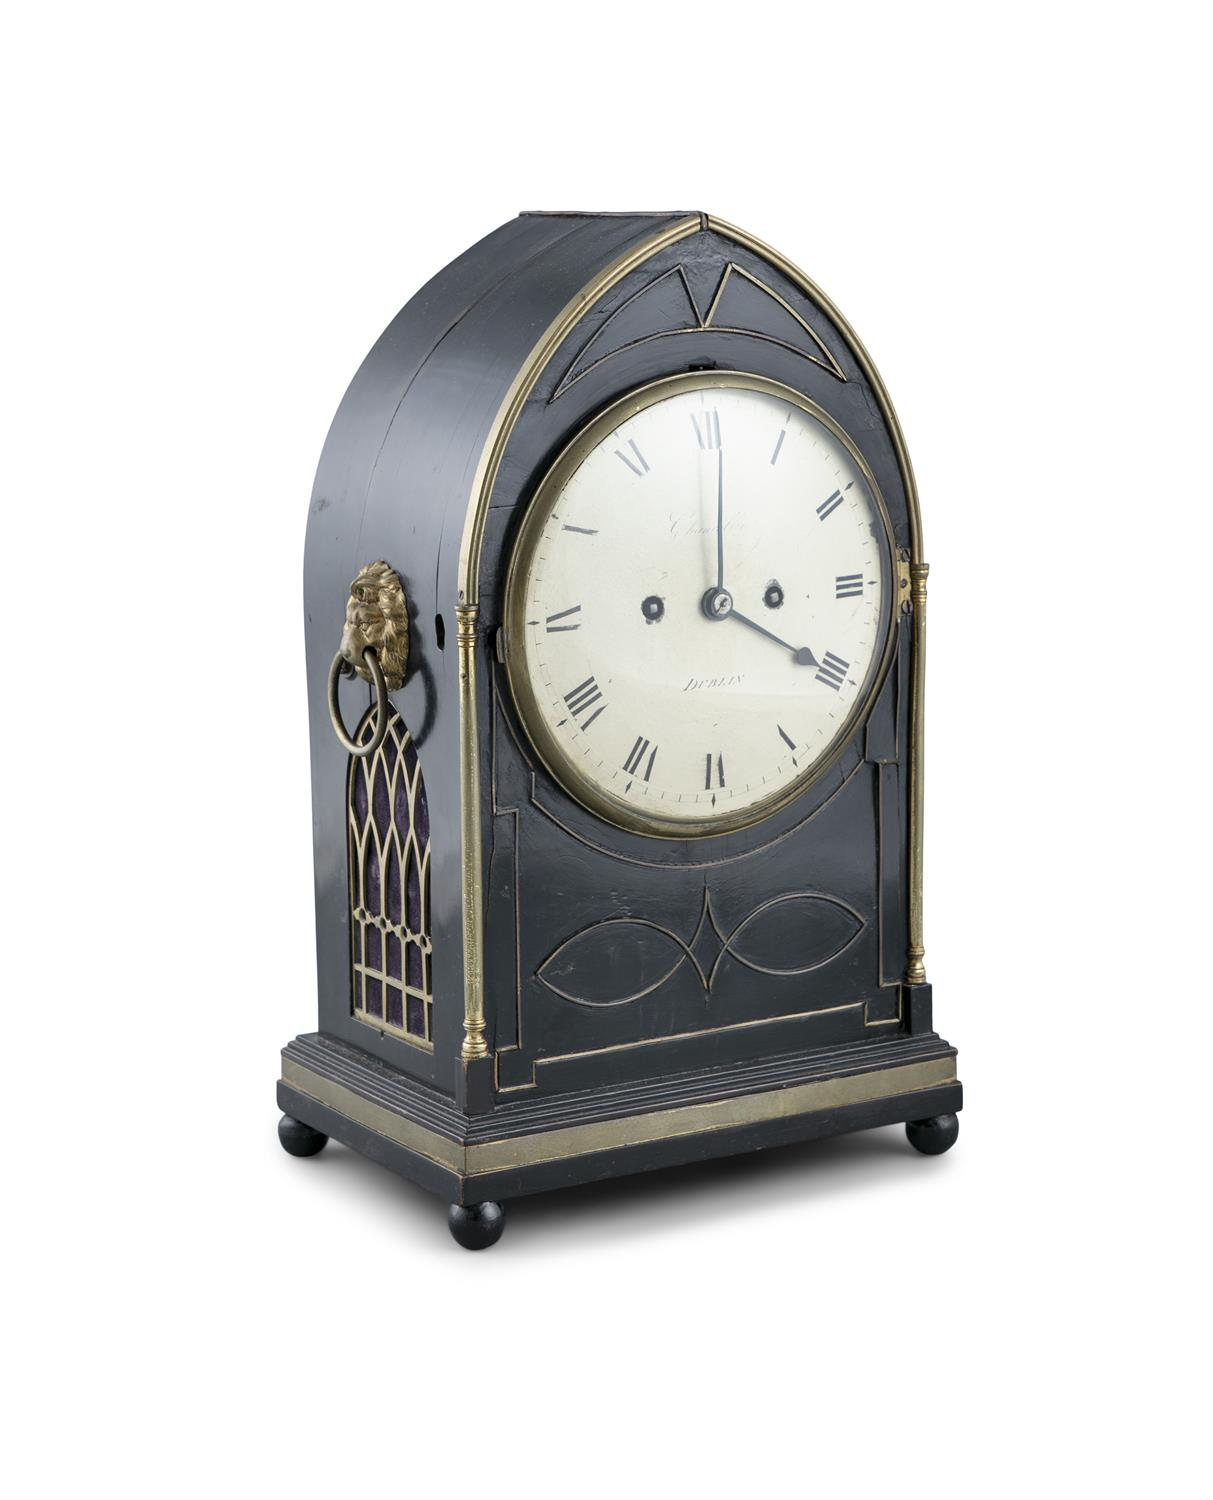 AN IRISH EBONISED MANTLE CLOCK, by Chancellor, Dublin, of arched shape, the body with lion mask - Image 2 of 3